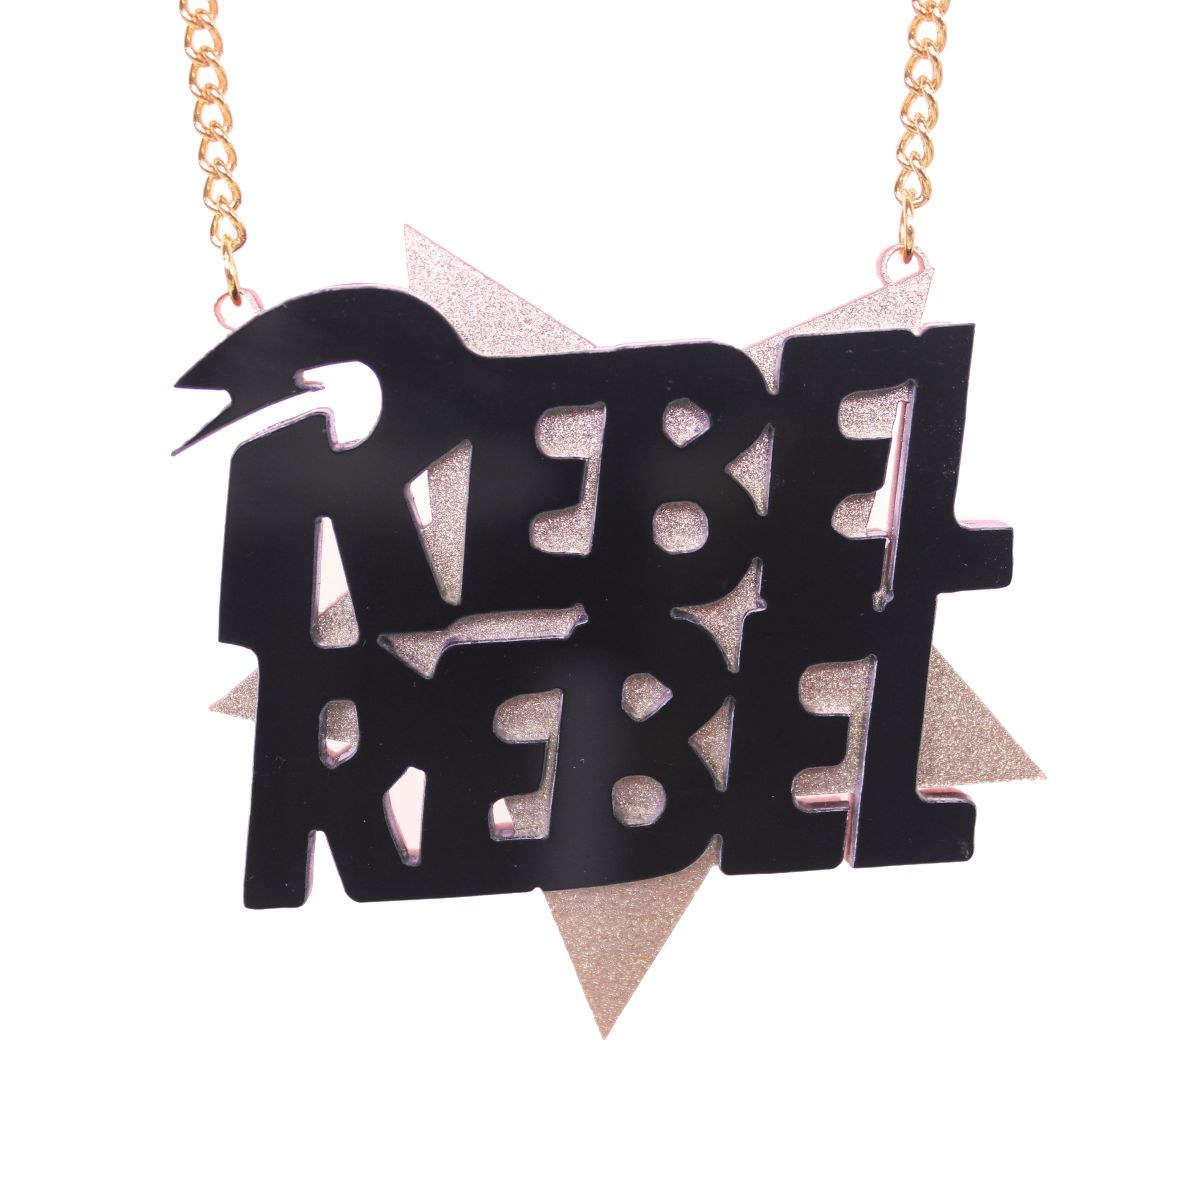 Rebel Rebel Necklace - Extreme Largeness Wholesale